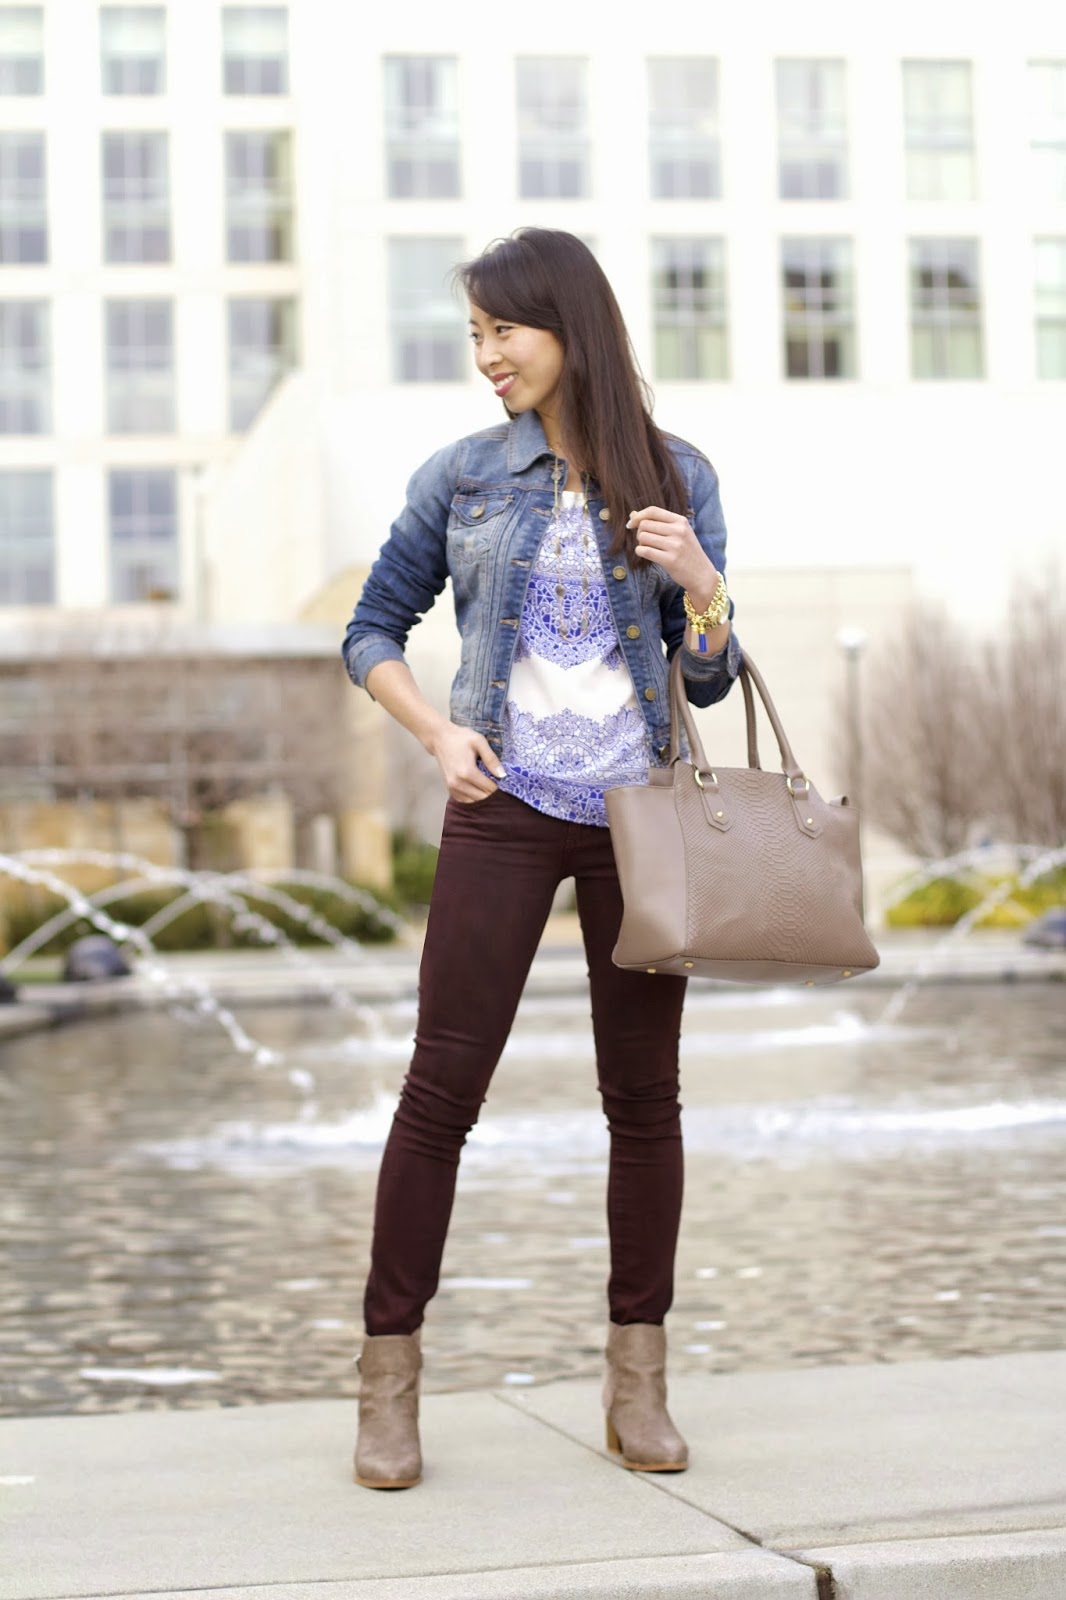 Taupe Booties & Purse. Outfit Details - Connnietang: Taupe Booties & Purse